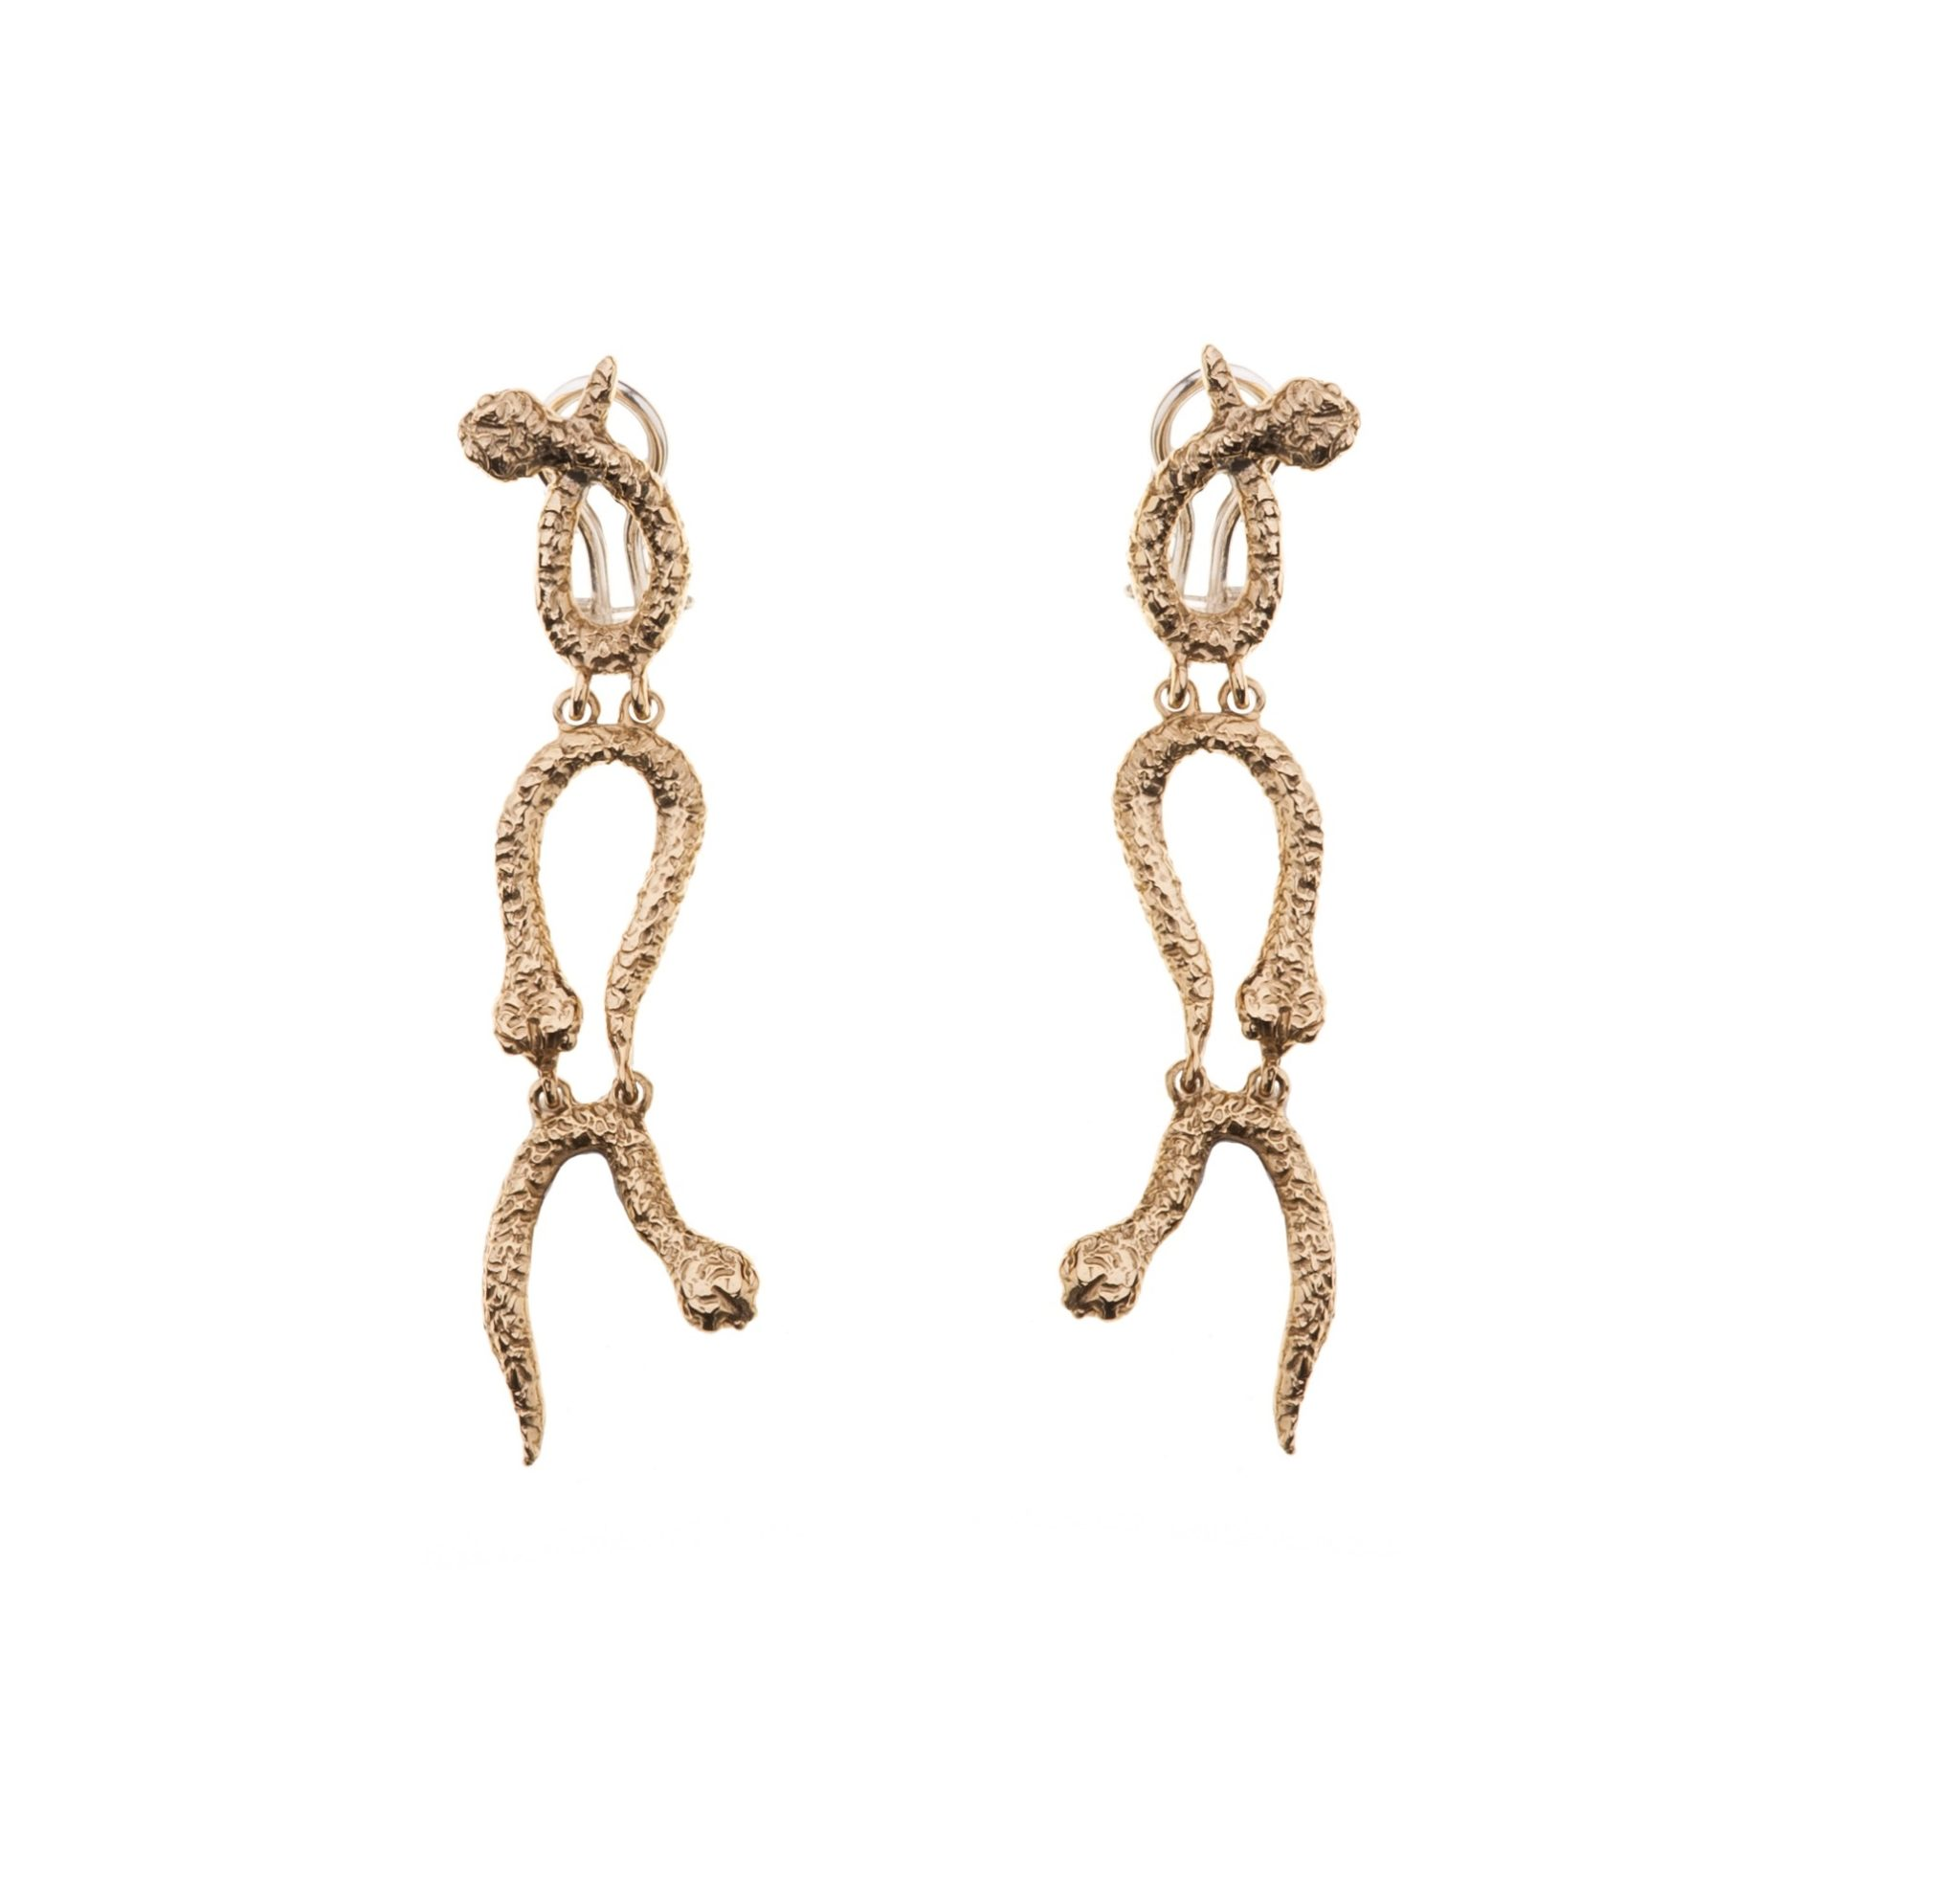 3 curved snaked bronze earrings